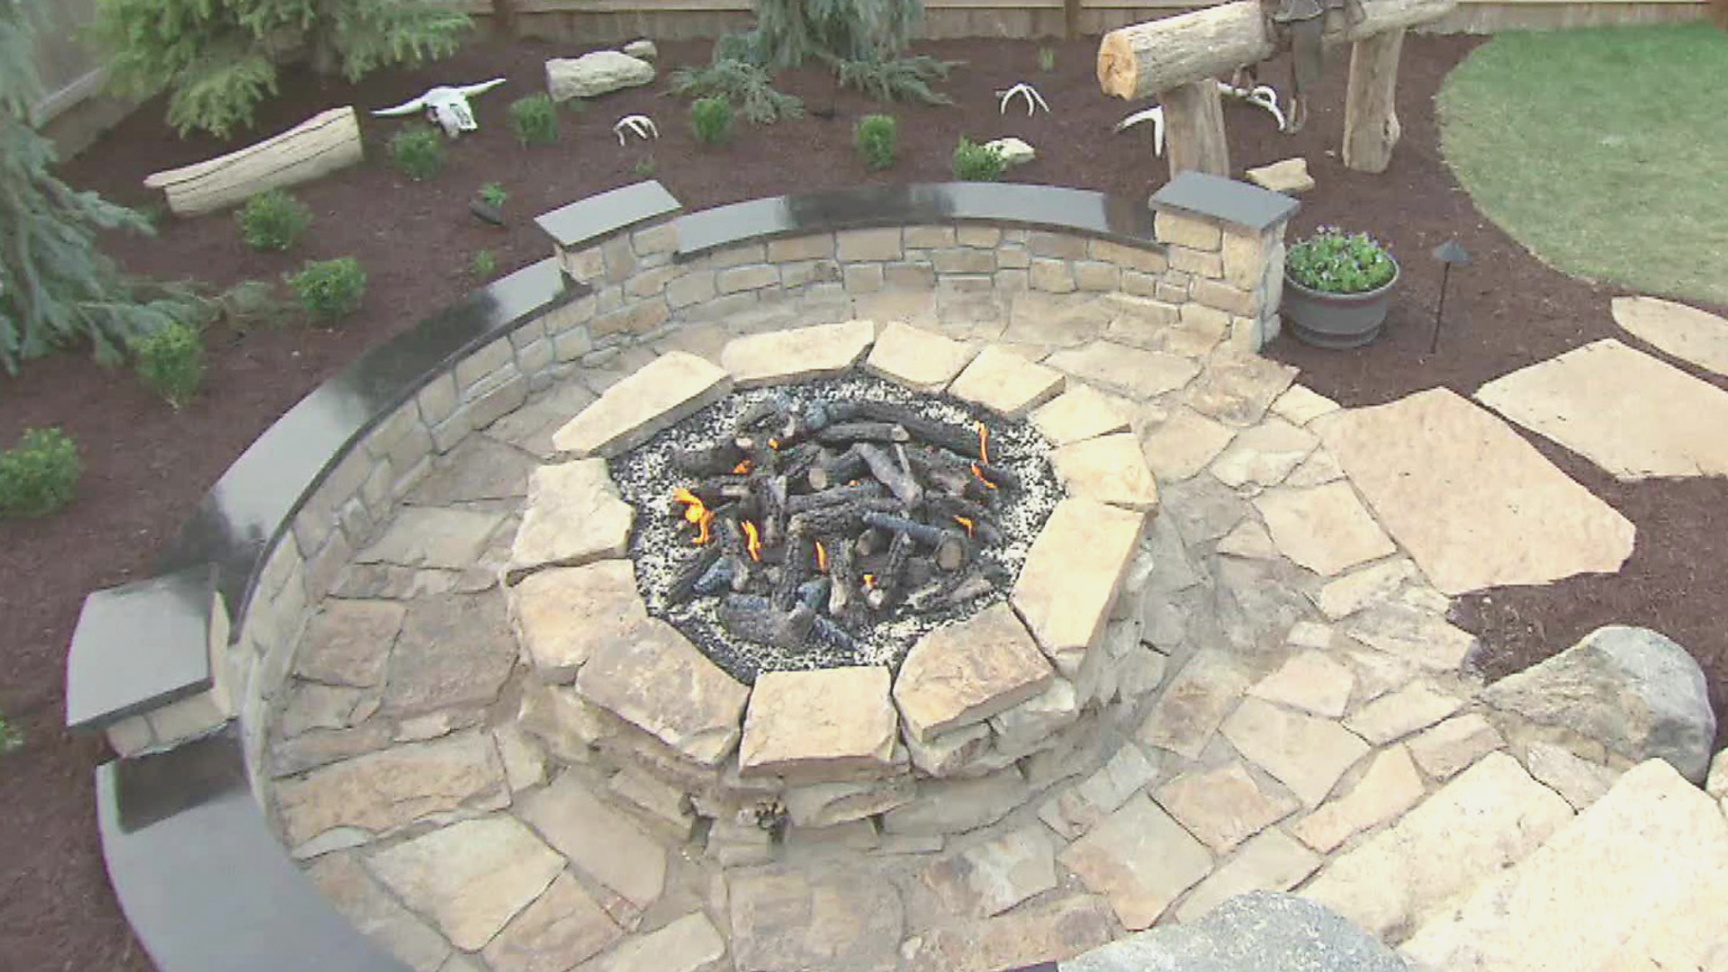 fire pit designs | how to build a stone fire pit | DIY | fire pit designs